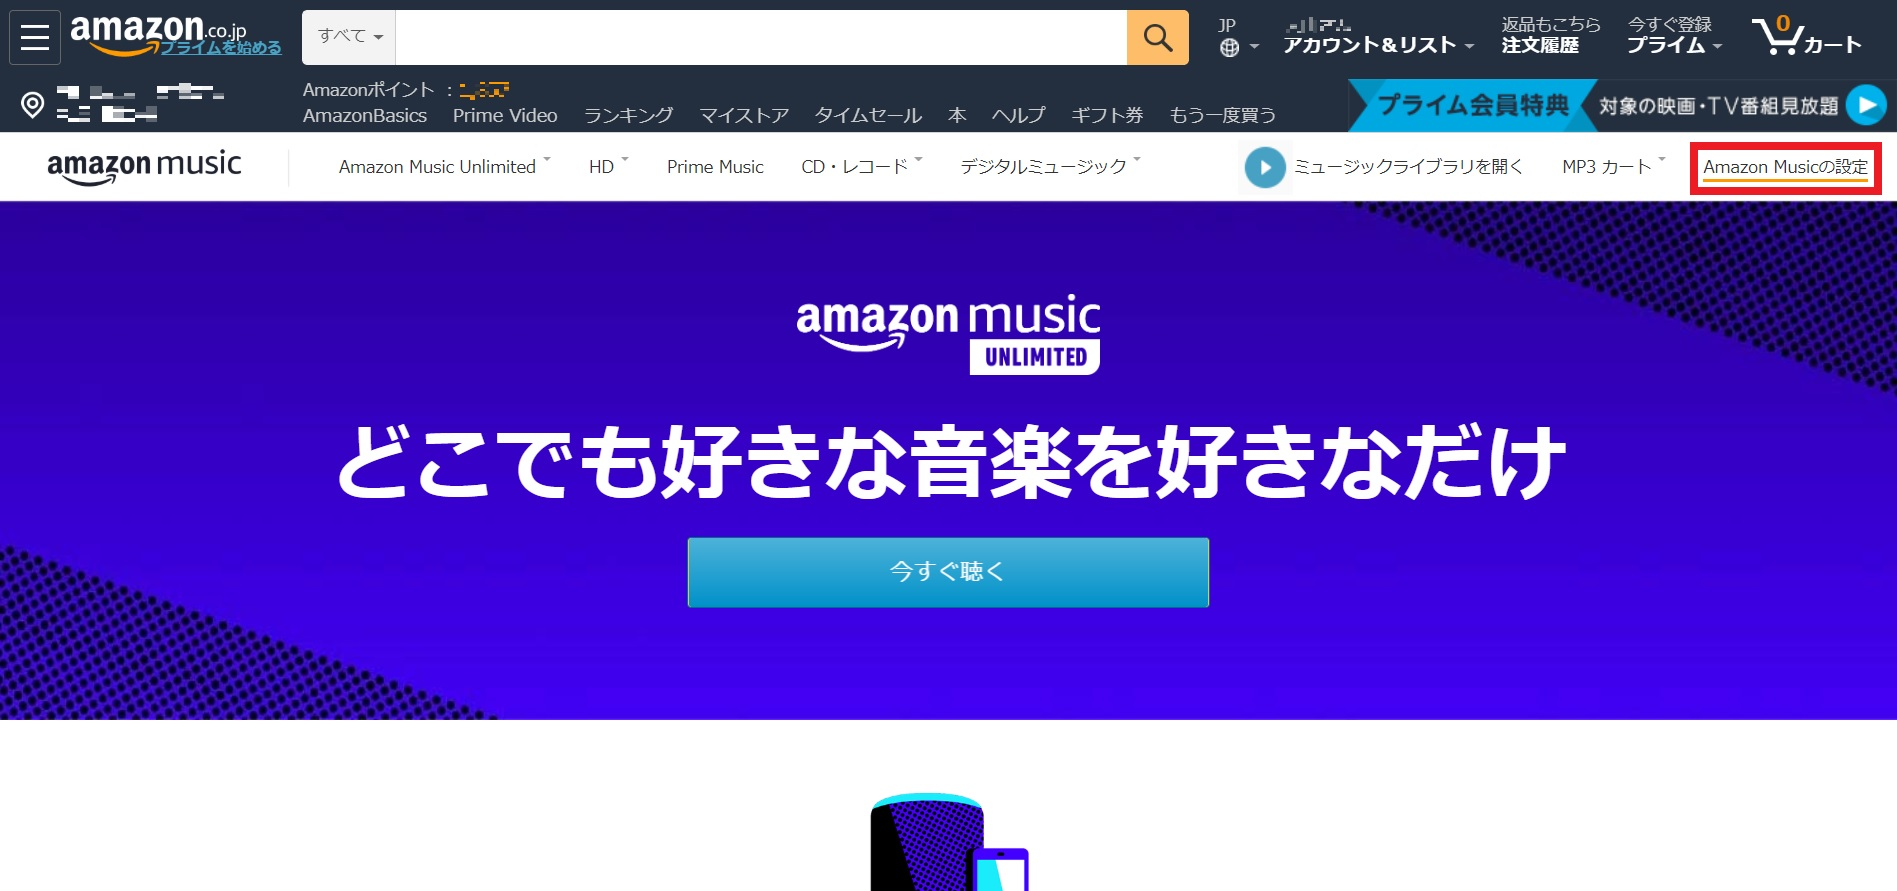 Amazon Music Unlimited解約方法